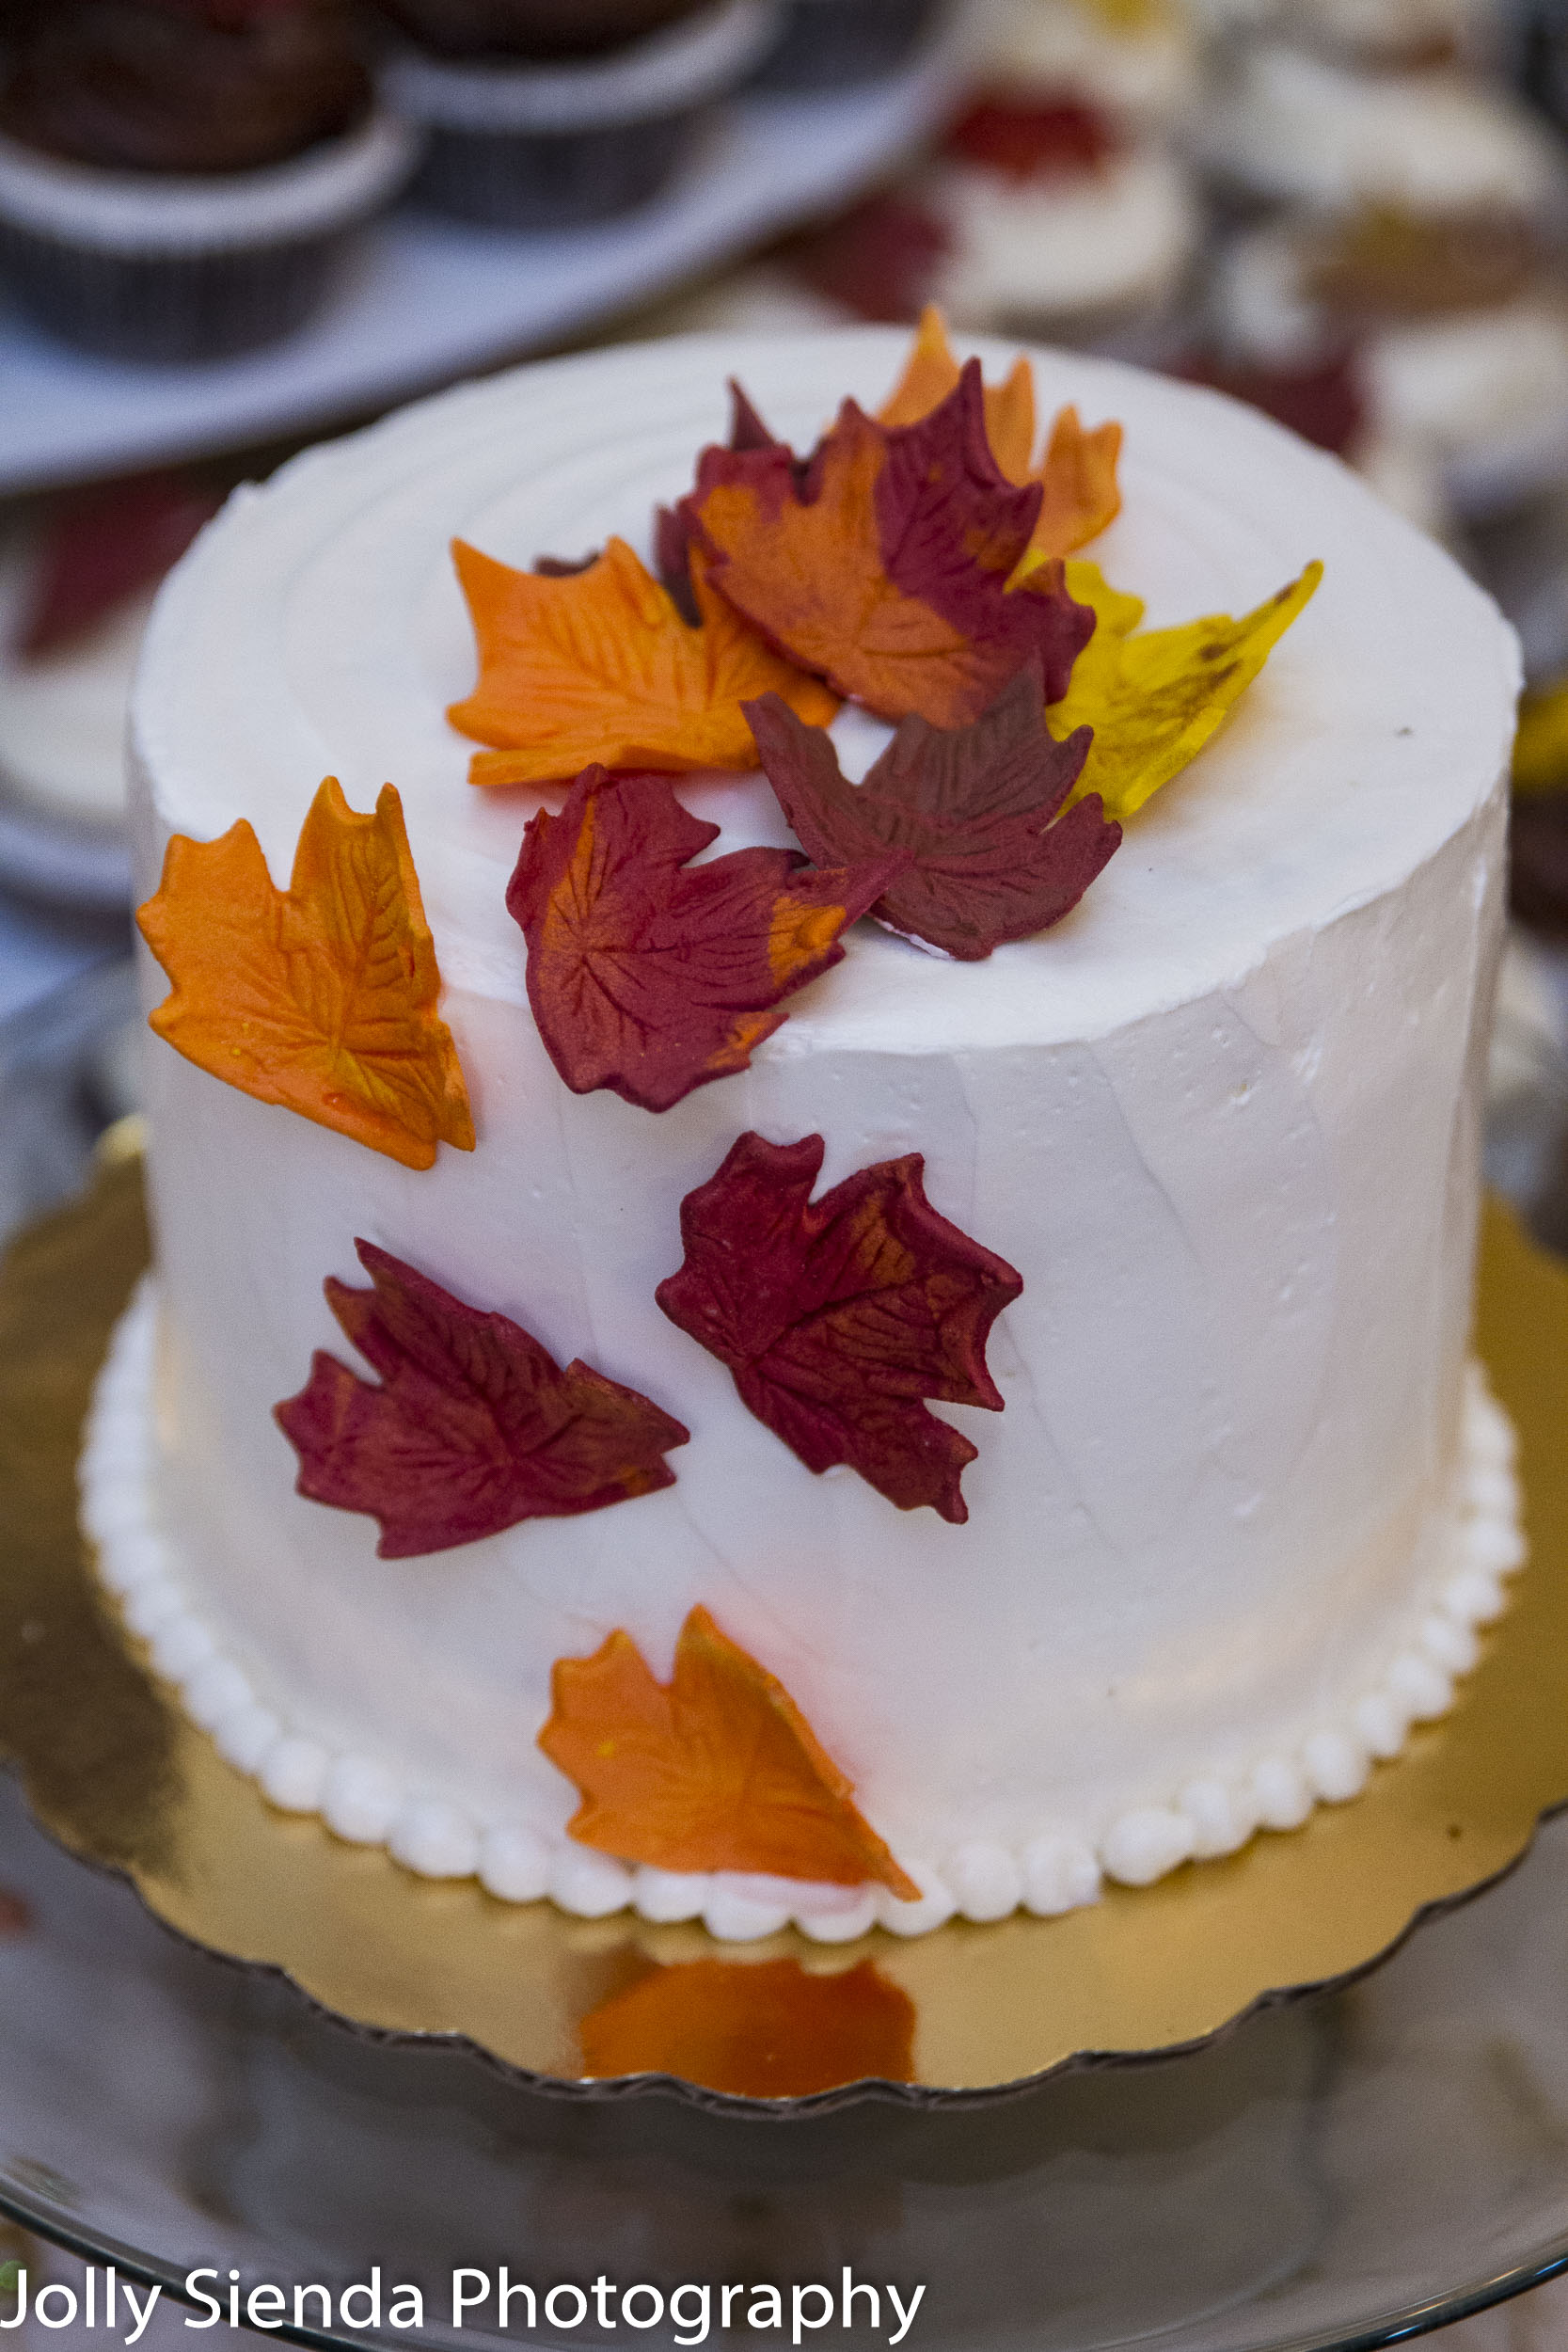 Grooms Autumn Wedding Cake